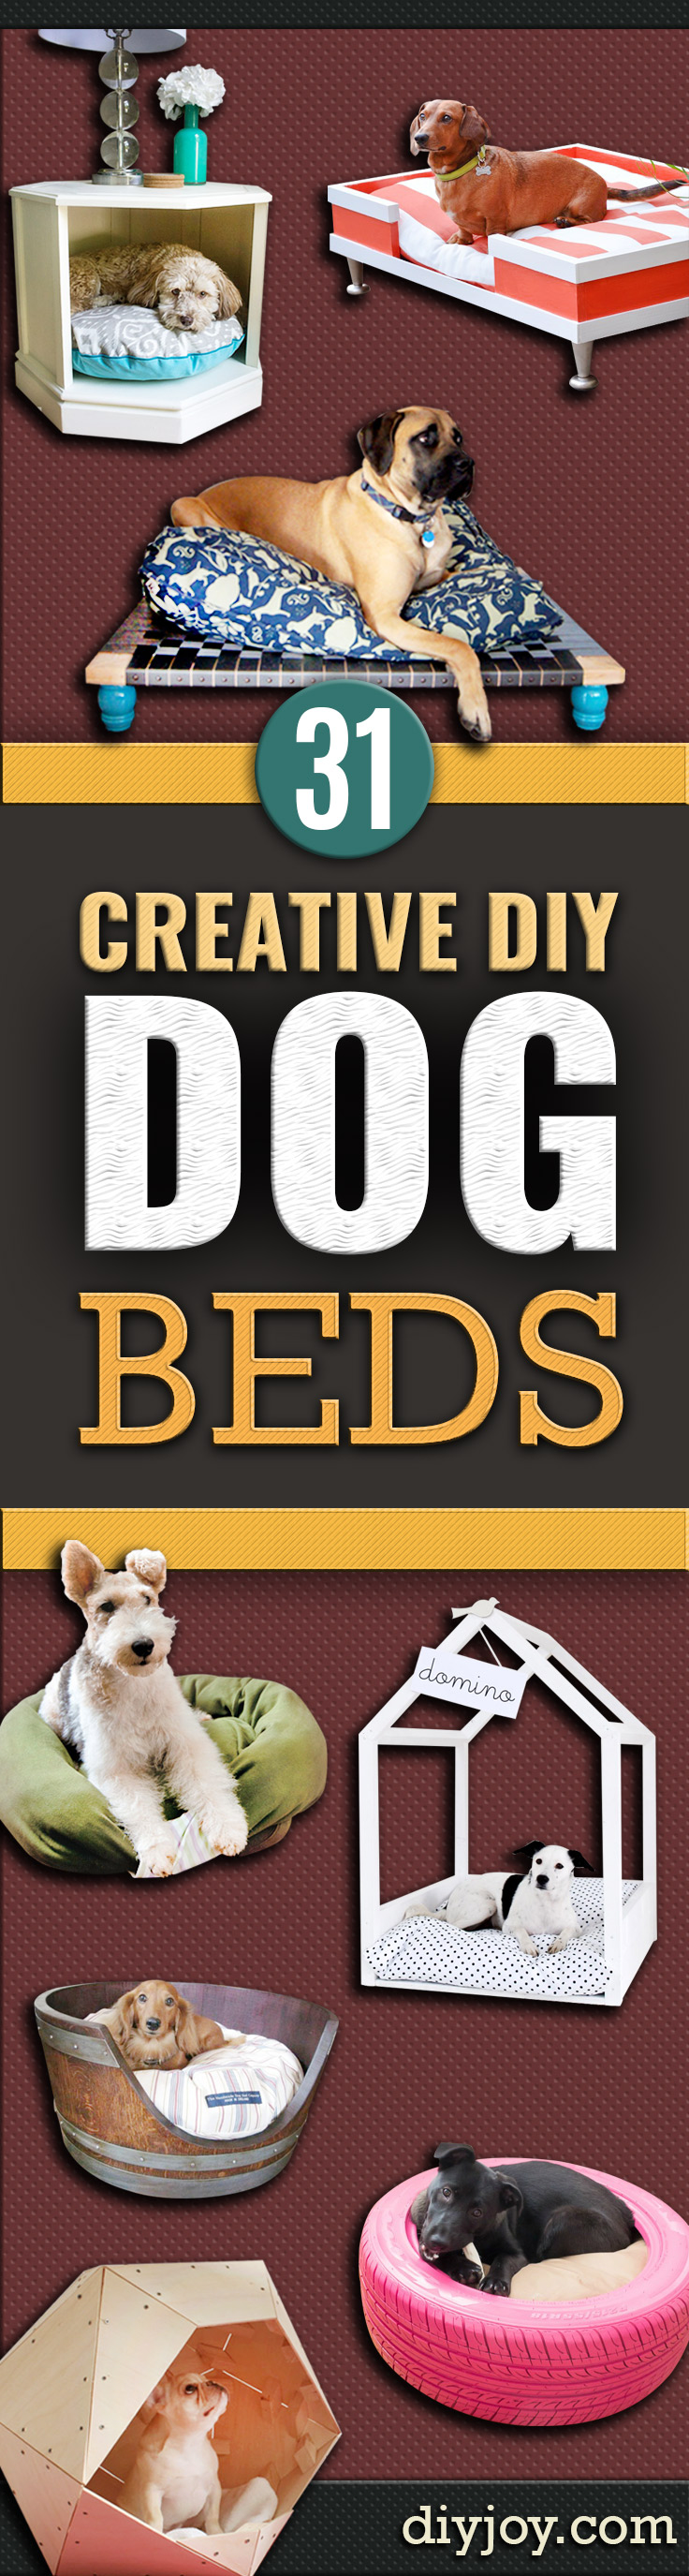 DIY Dog Beds - DYI Pet Projects and Homemade Bed Ideas for Large, Medium and Small Dogs - Cute and Easy No Sew Crafts for Your Pets. Pallet, Crate, PVC and End Table Dog Bed Tutorials